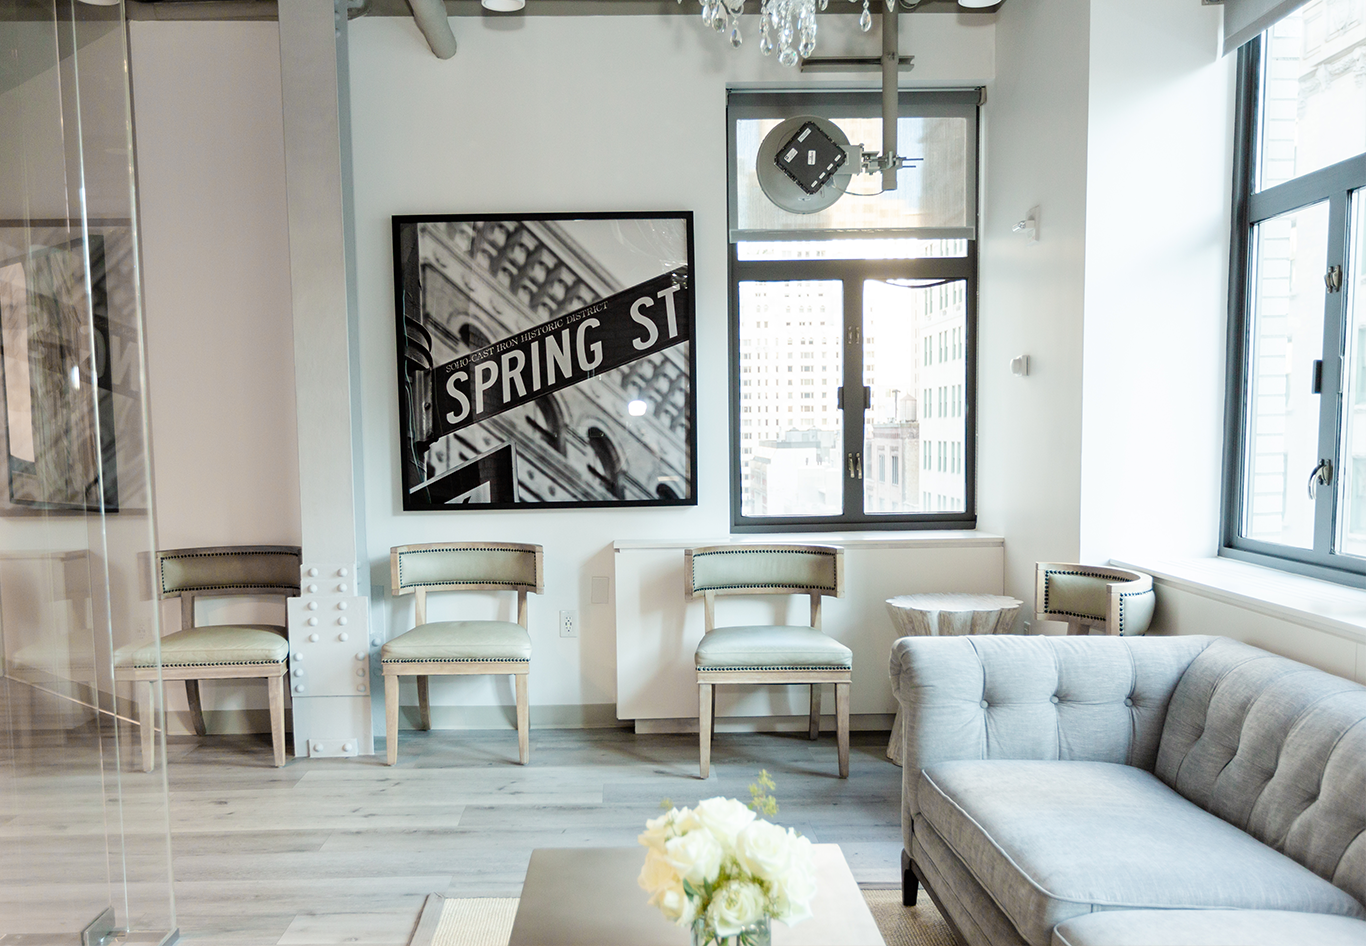 Image of the waiting room of Spring Street Dermatology in Manhattan, NY